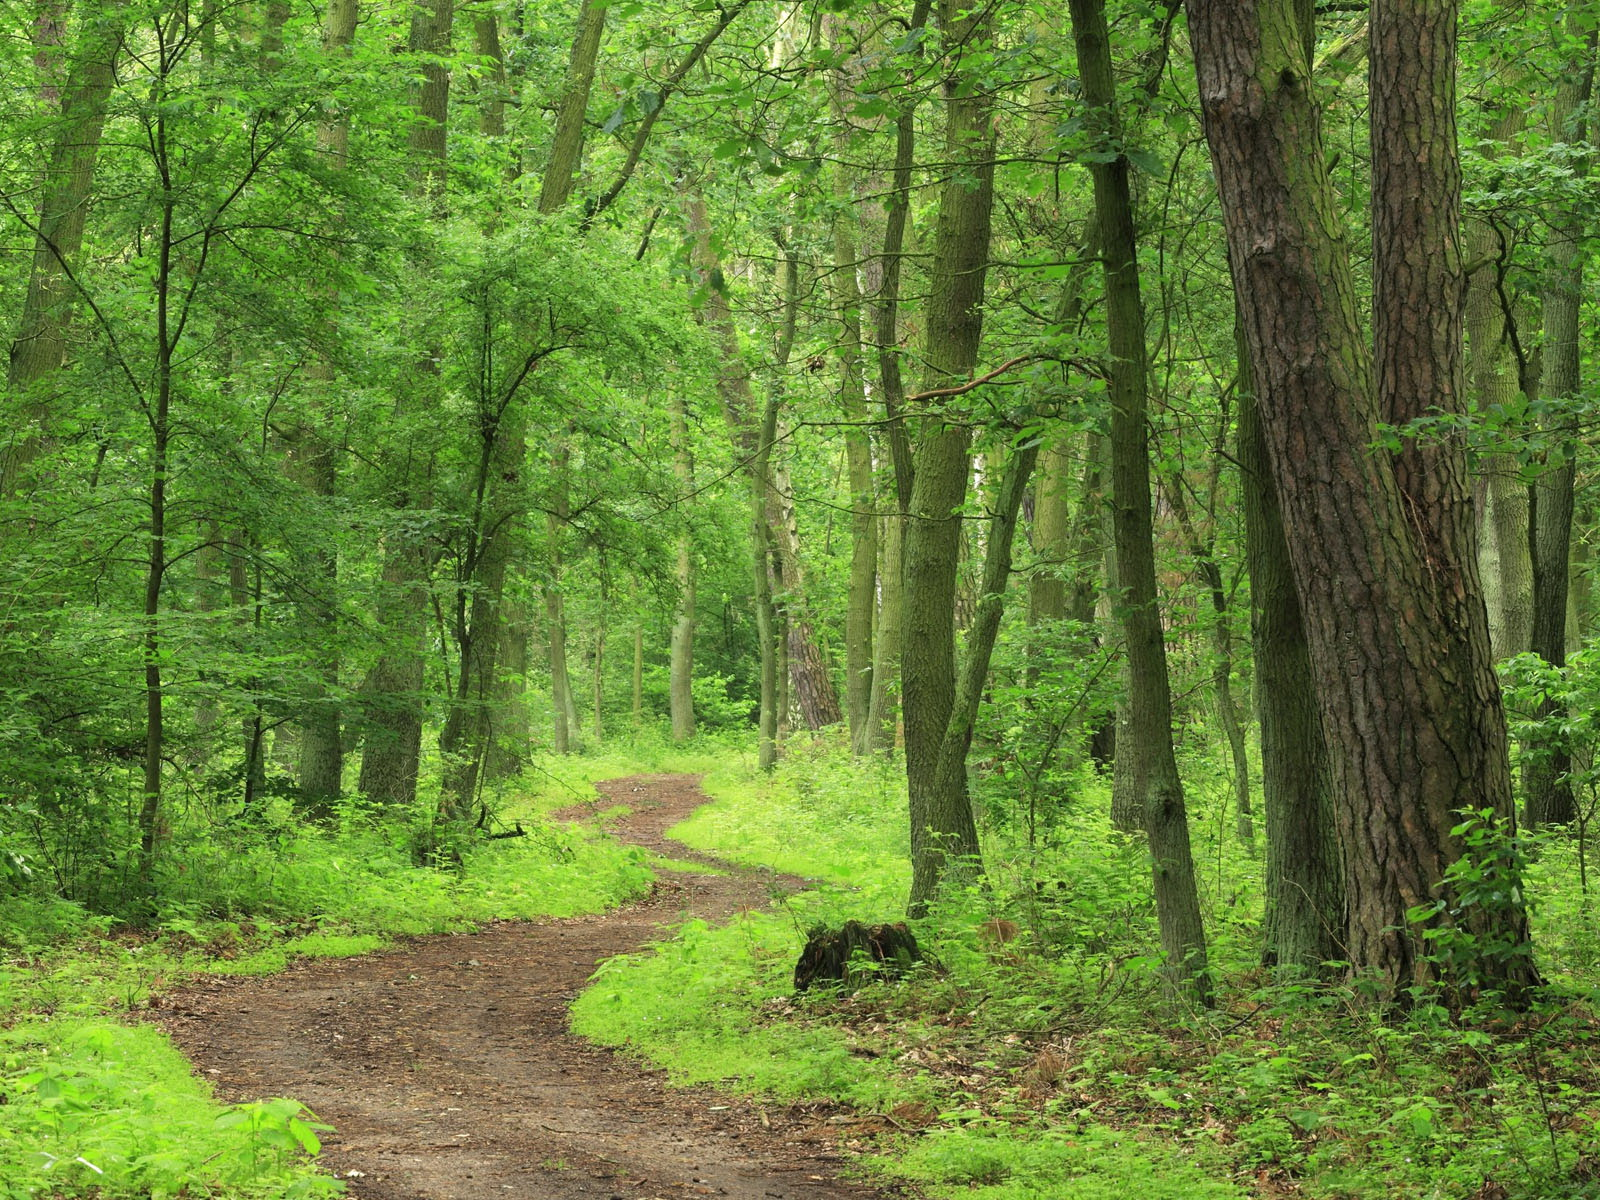 green forest hd wallpapers green forest hd wallpapers green forest 1600x1200